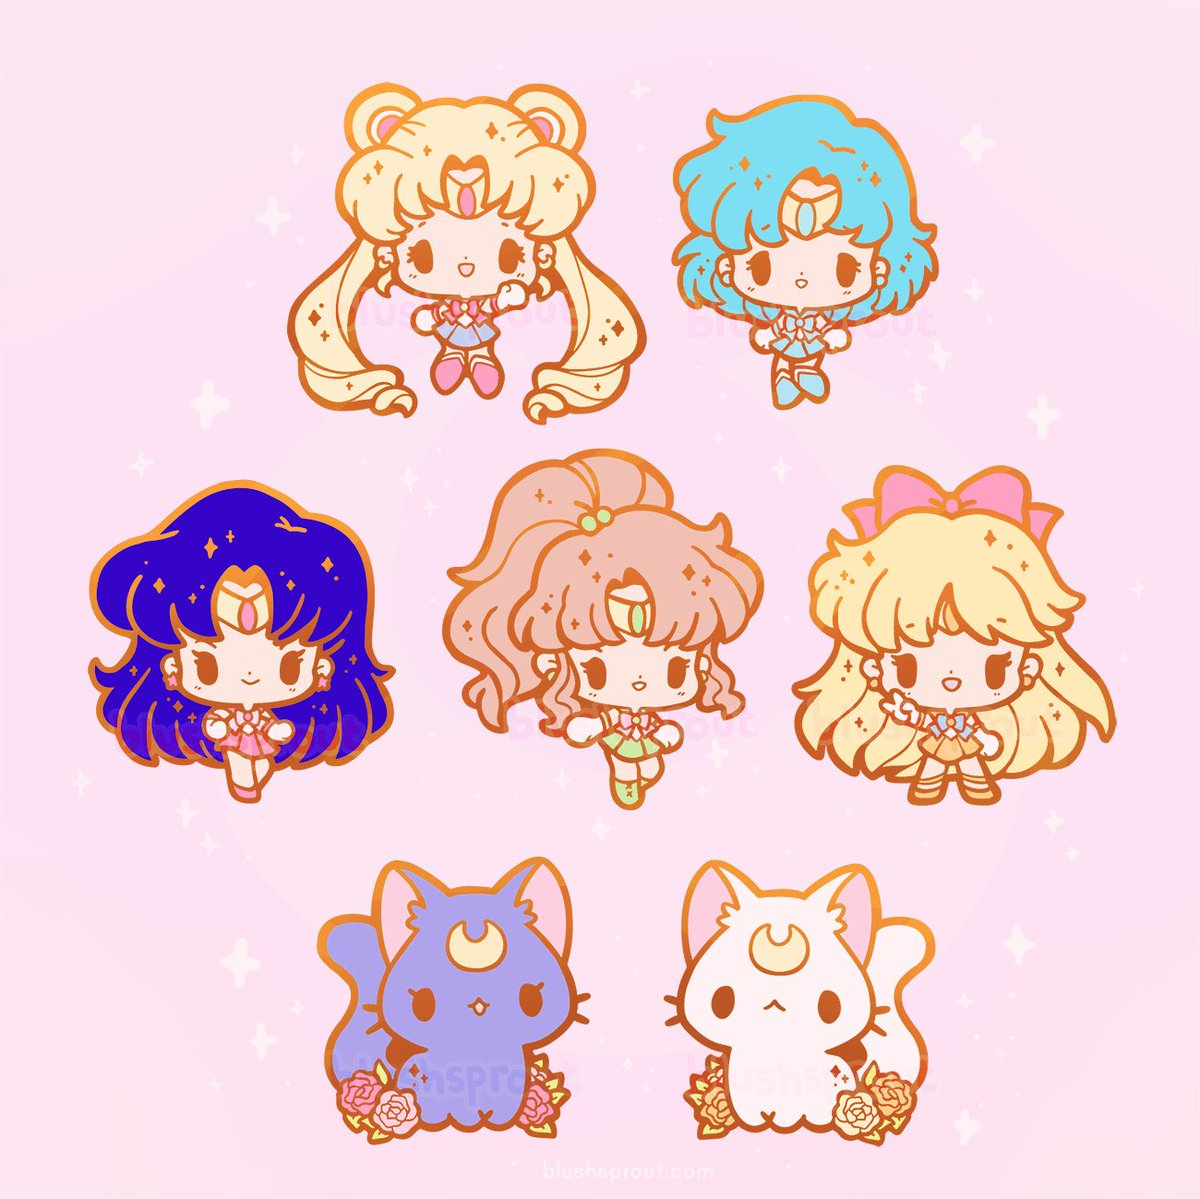 [RTs appreciated!] Sailor Moon pins are up for preorder until March 9th! 🌙✨💖 Free holo Luna & Artemis stickers with every purchase of a complete set ☺️ https://blushsprout.com/collections/preorders…